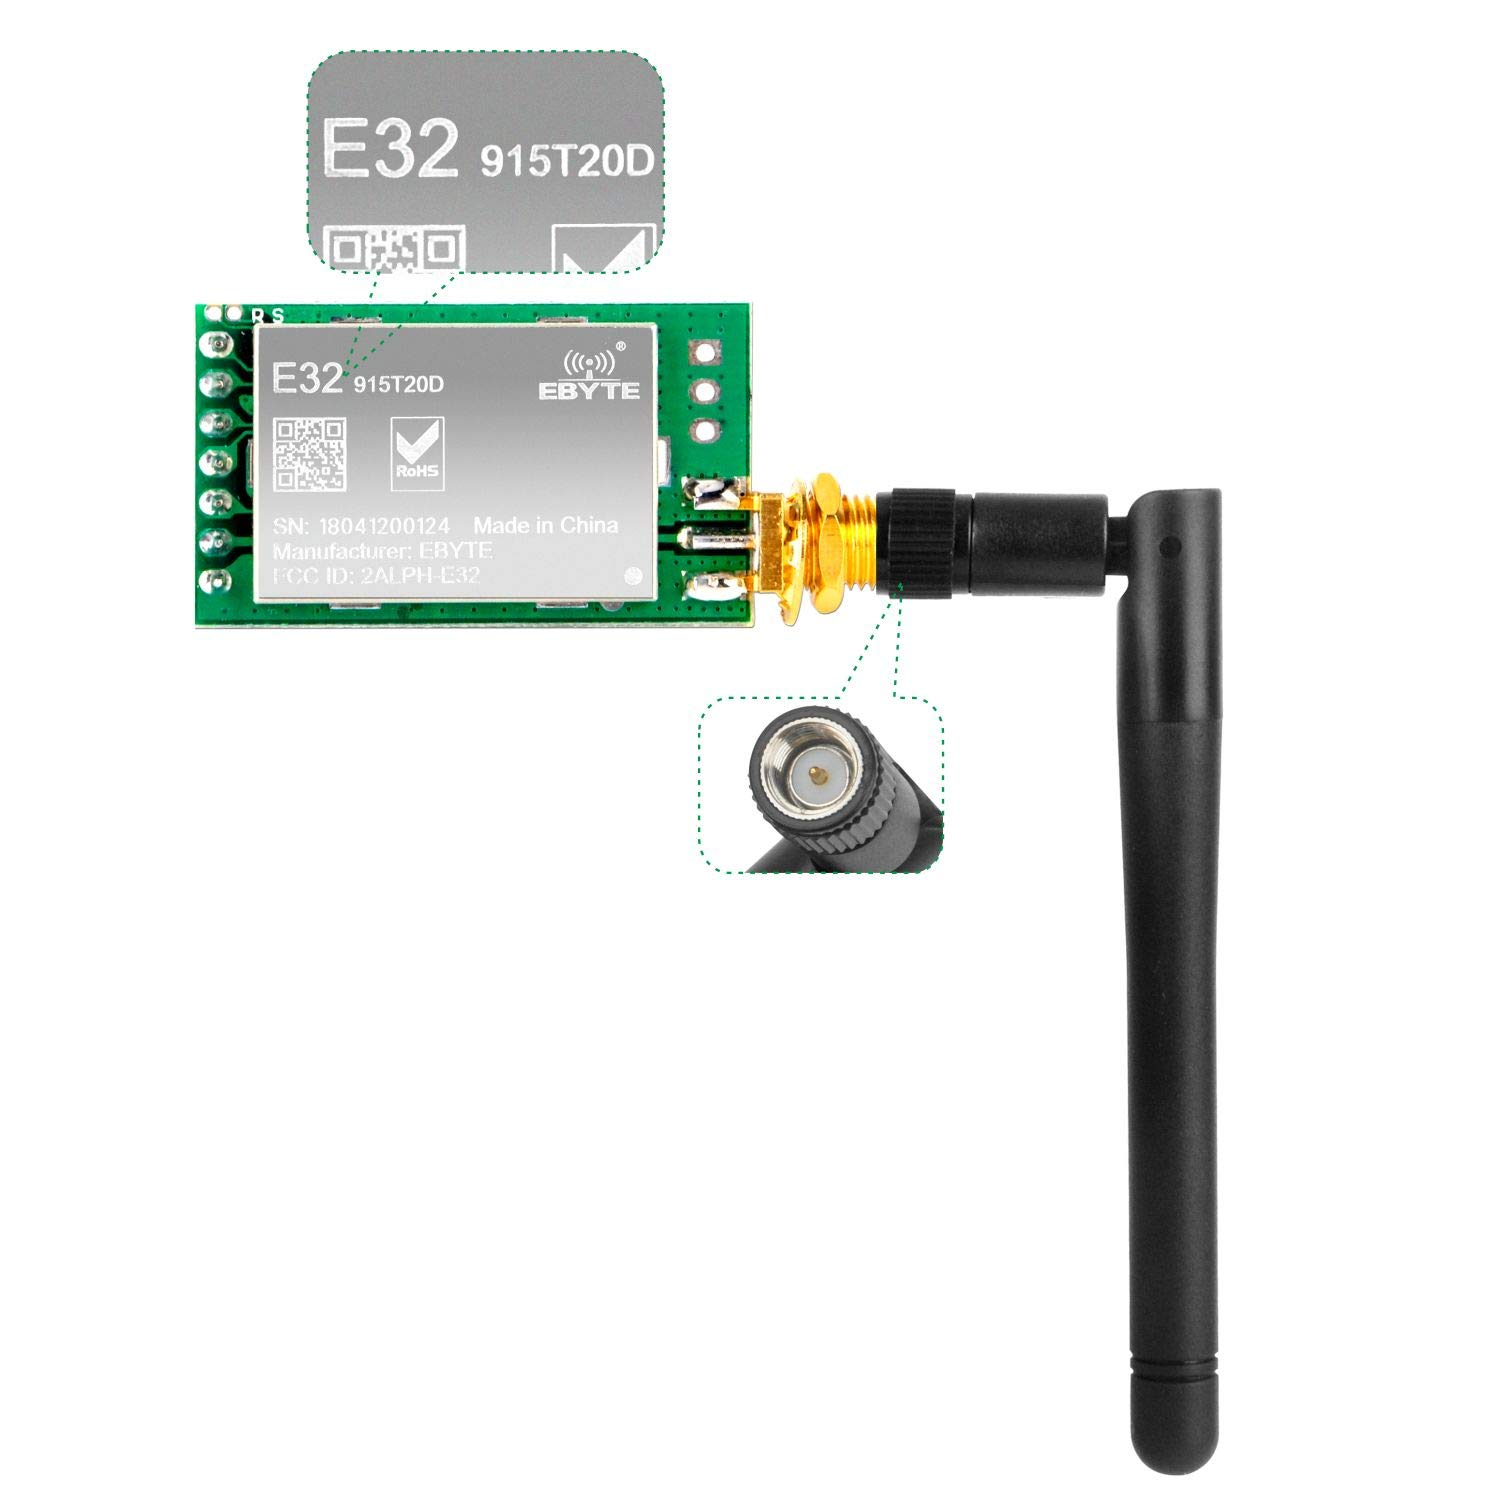 Gowoops SX1276 LoRa Radio Wireless 915Mhz UART Serial Module LoRaWAN Transmitter Receiver + 915Mhz 3dBi SMA Antenna, Compatible with Arduino STM32 51 Single Chip Microcomputer